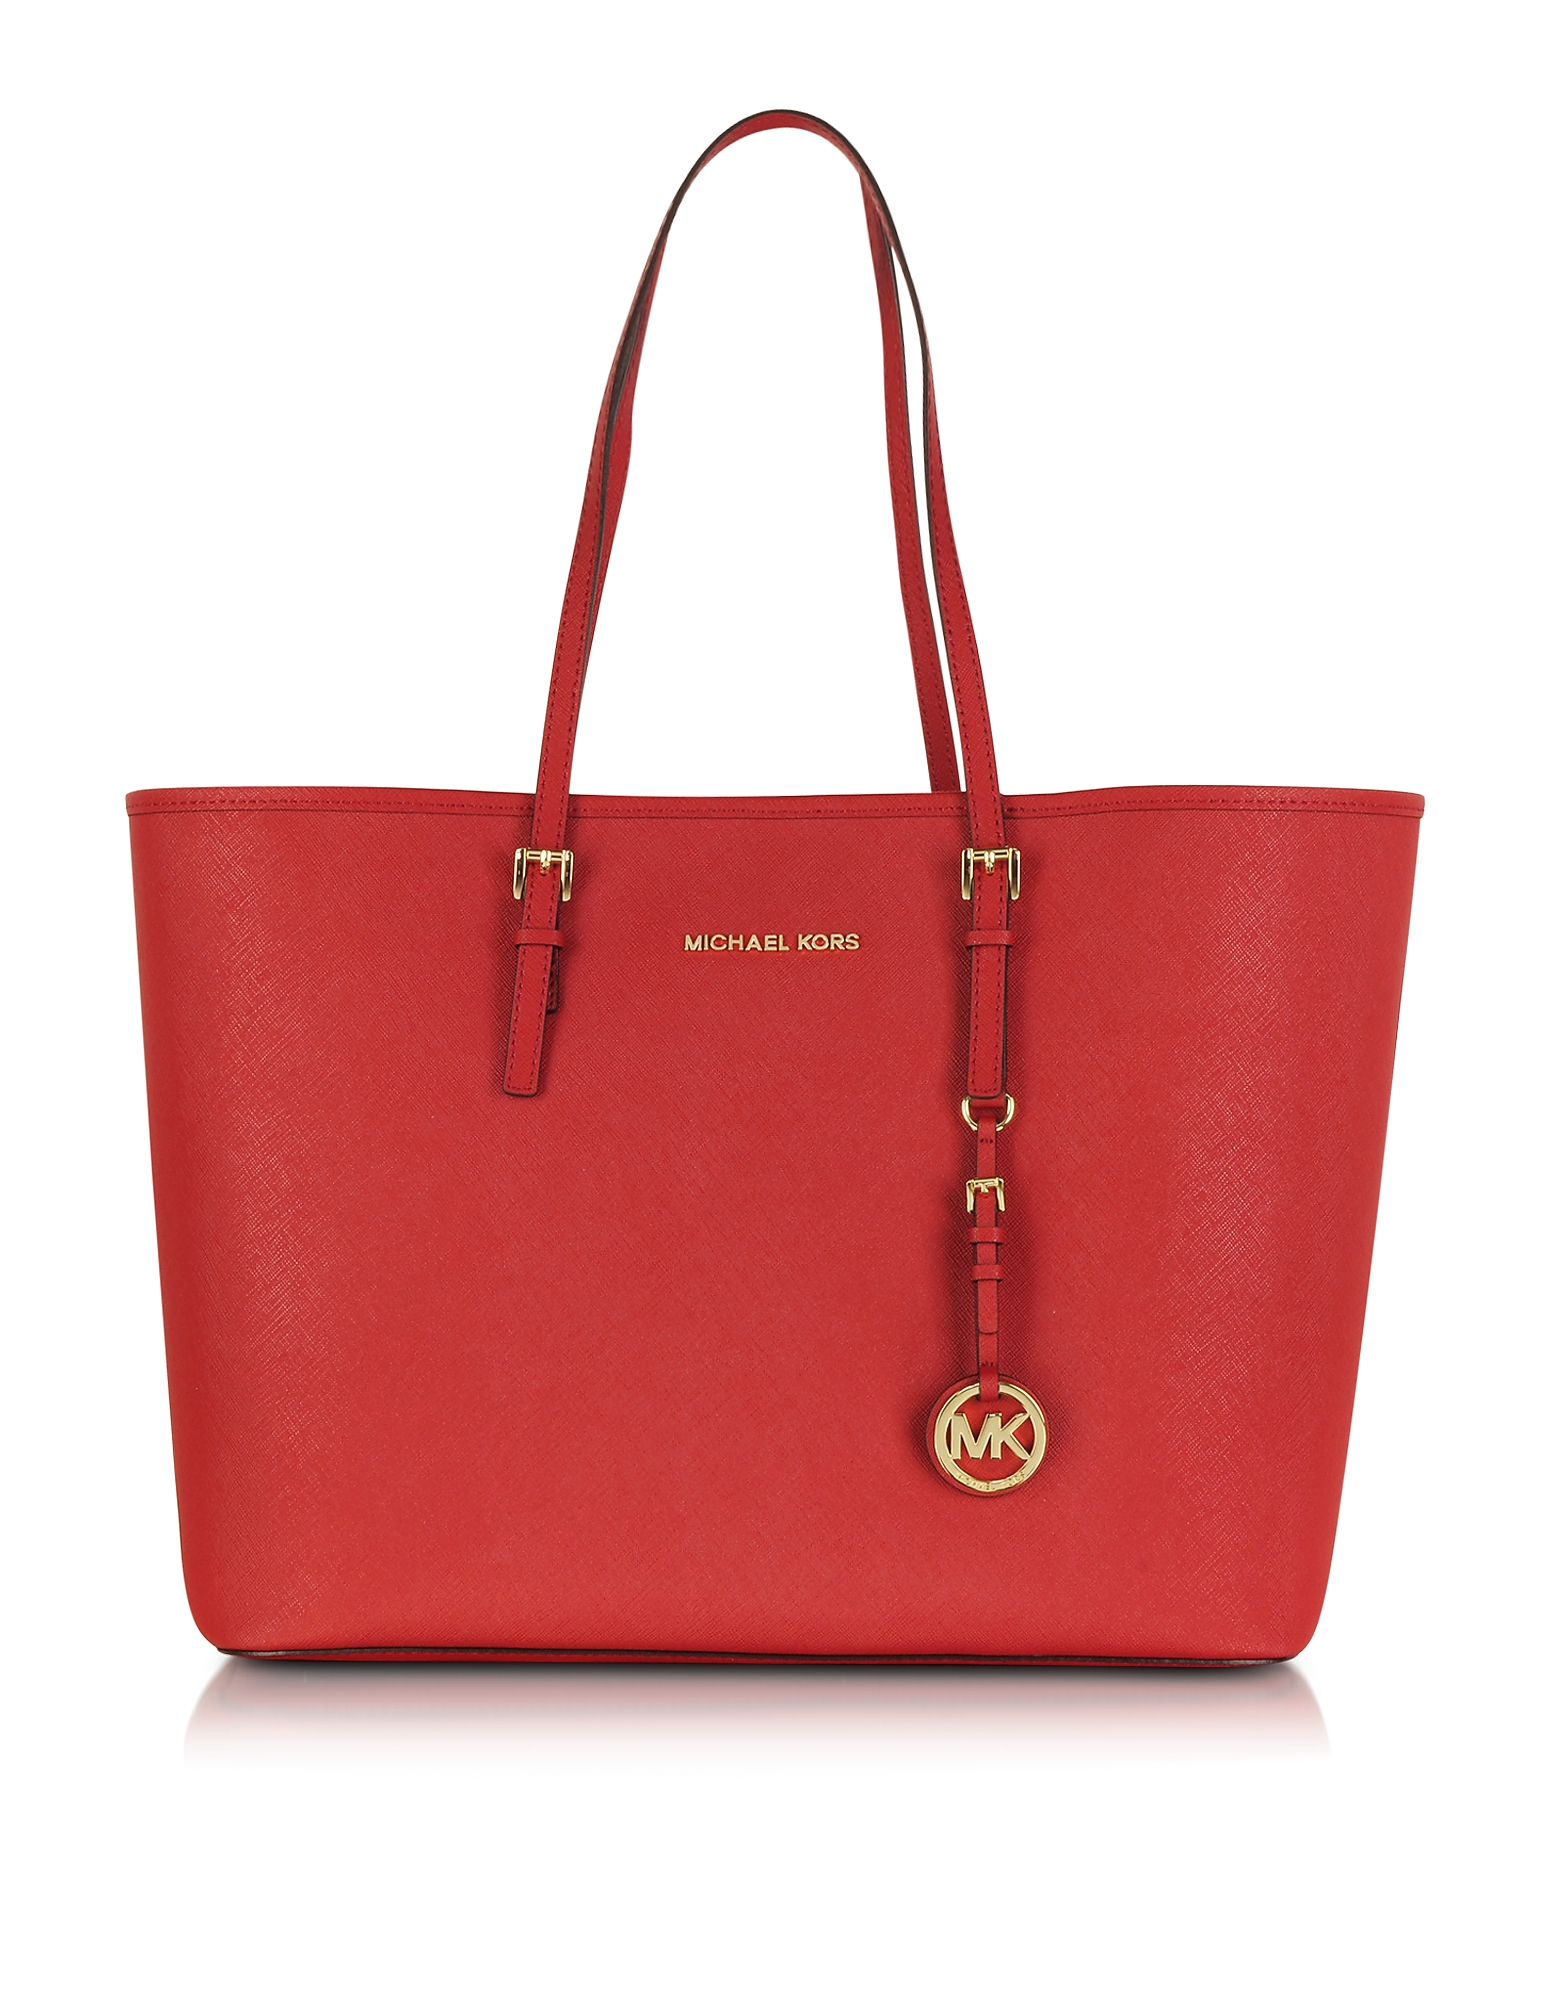 Michael Kors Handbags, Jet Set Travel Medium Bright Red Saffiano Leather Top-Zip Tote